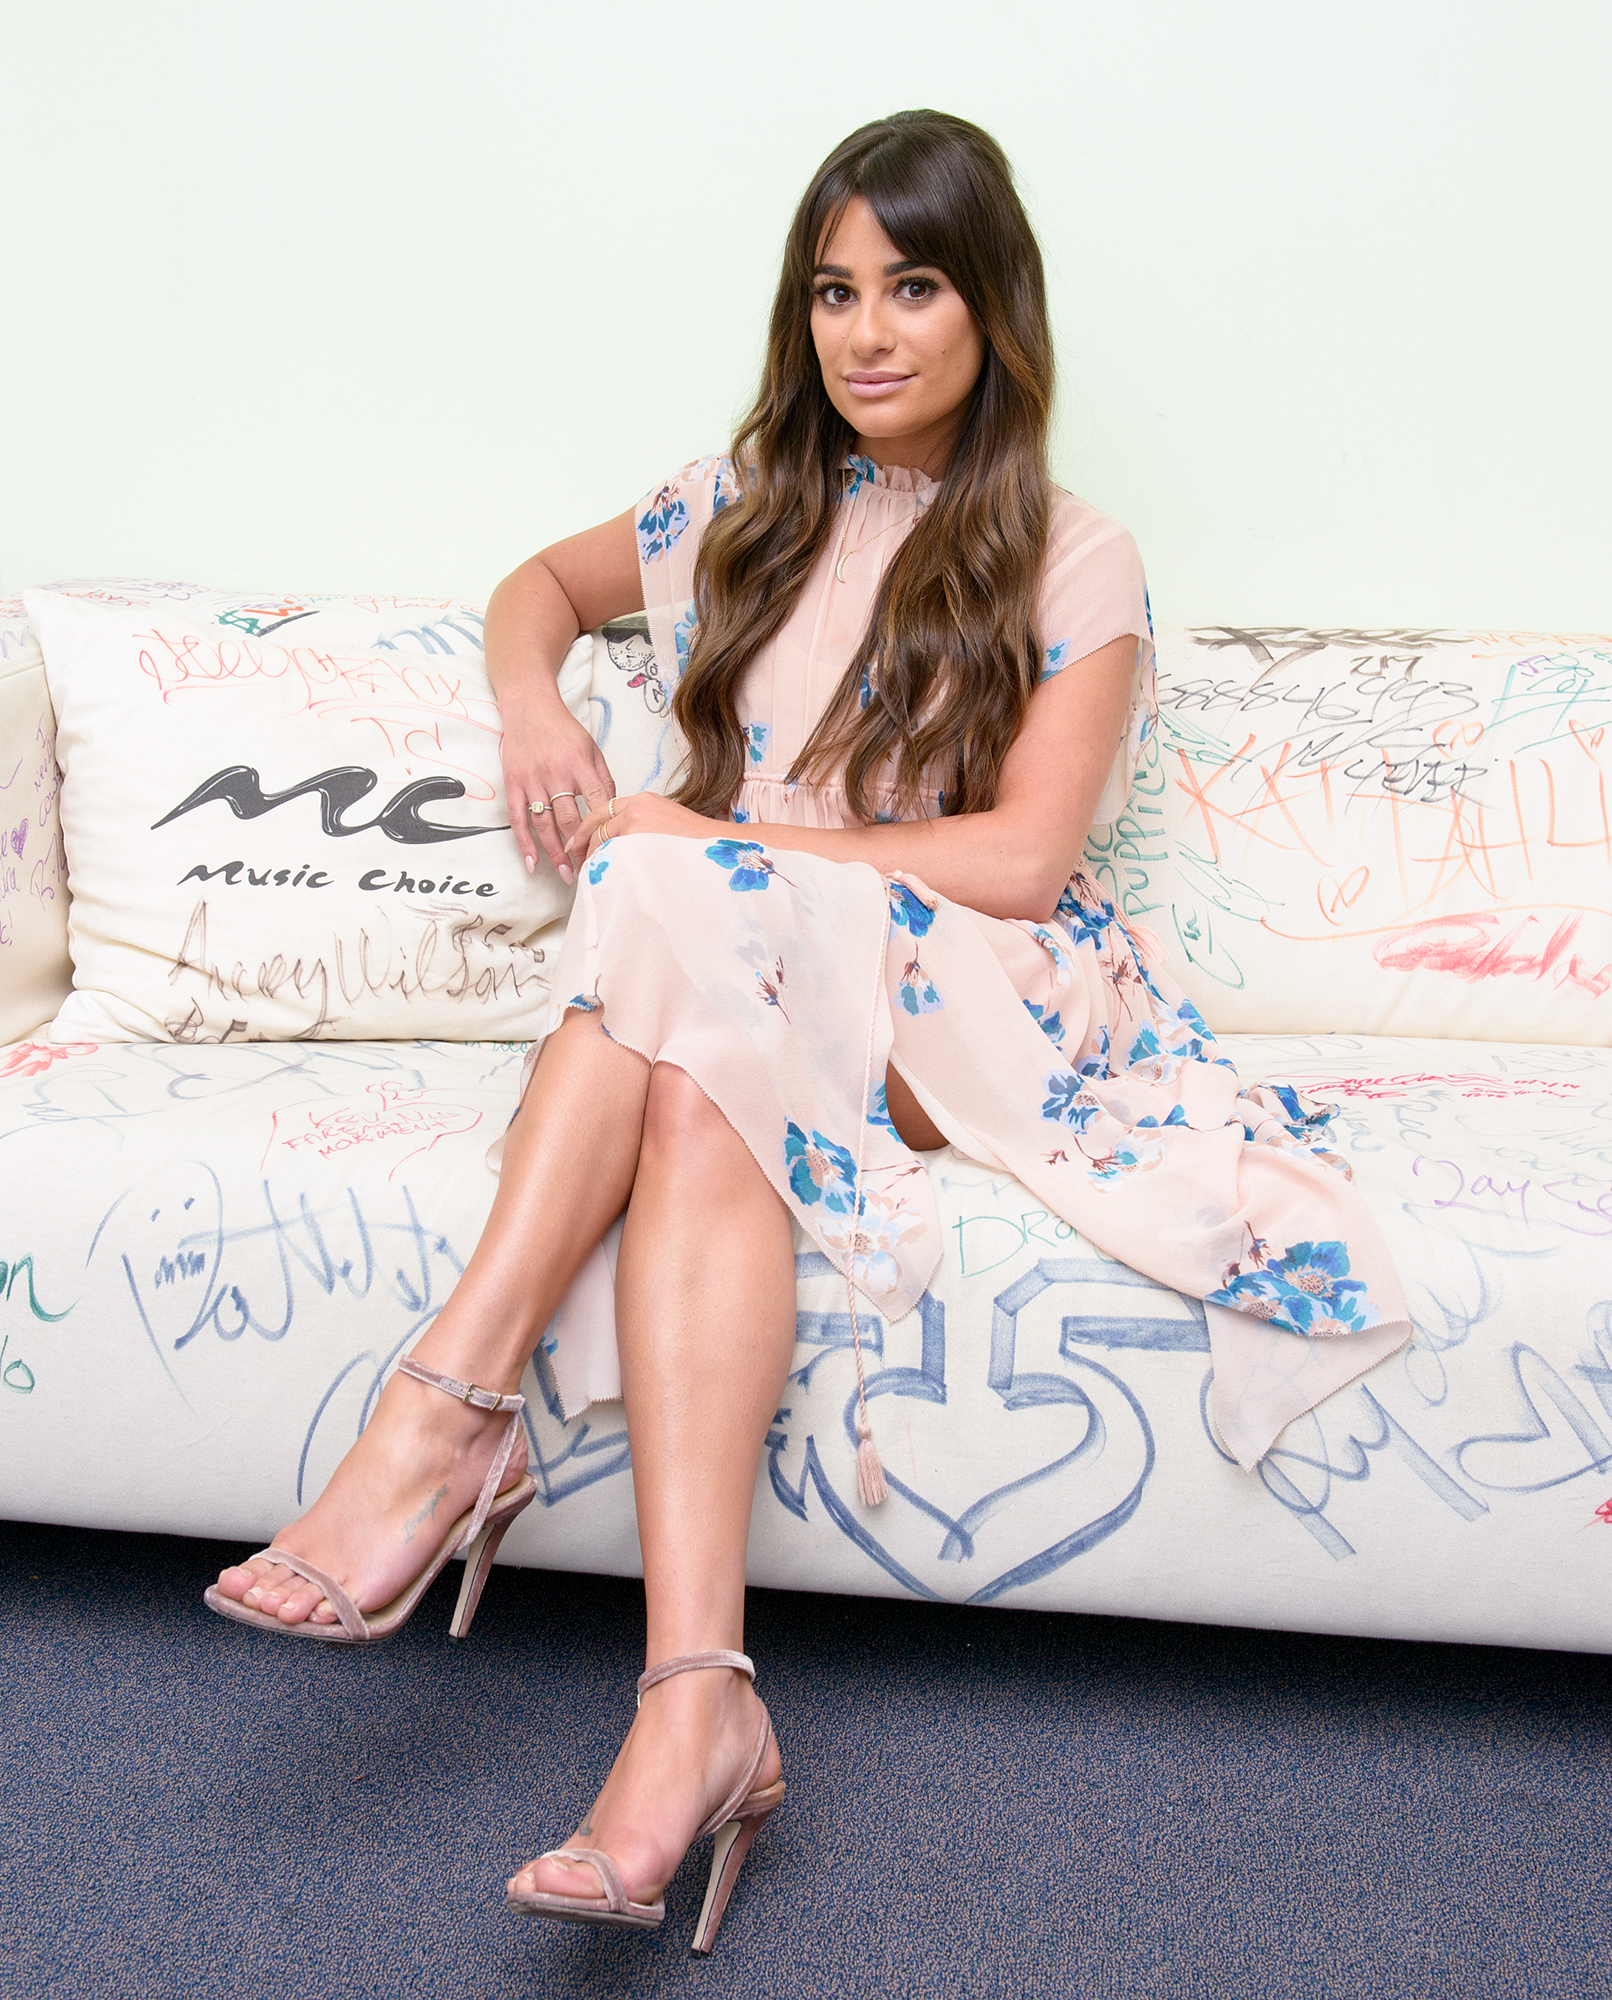 Lea Michele Says She's 'Never Eaten Fast Food,' Won't Drink Soda or Eat Candy